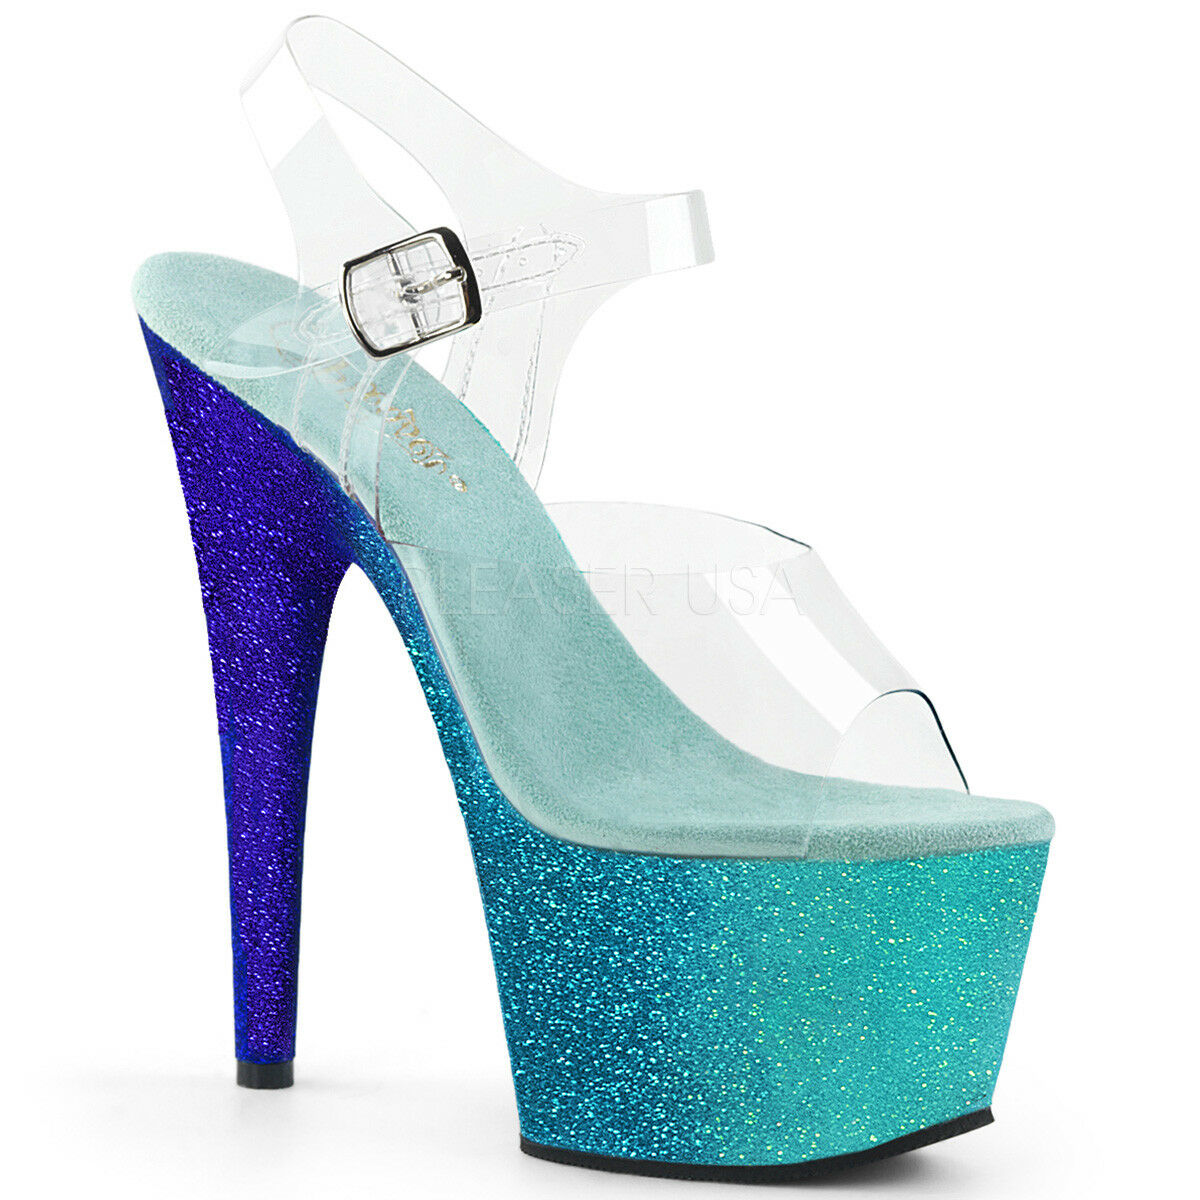 PLEASER ADORE 708OMBRE AQUA-Blau POLE DANCING STILETTO HEEL SANDALS Schuhe